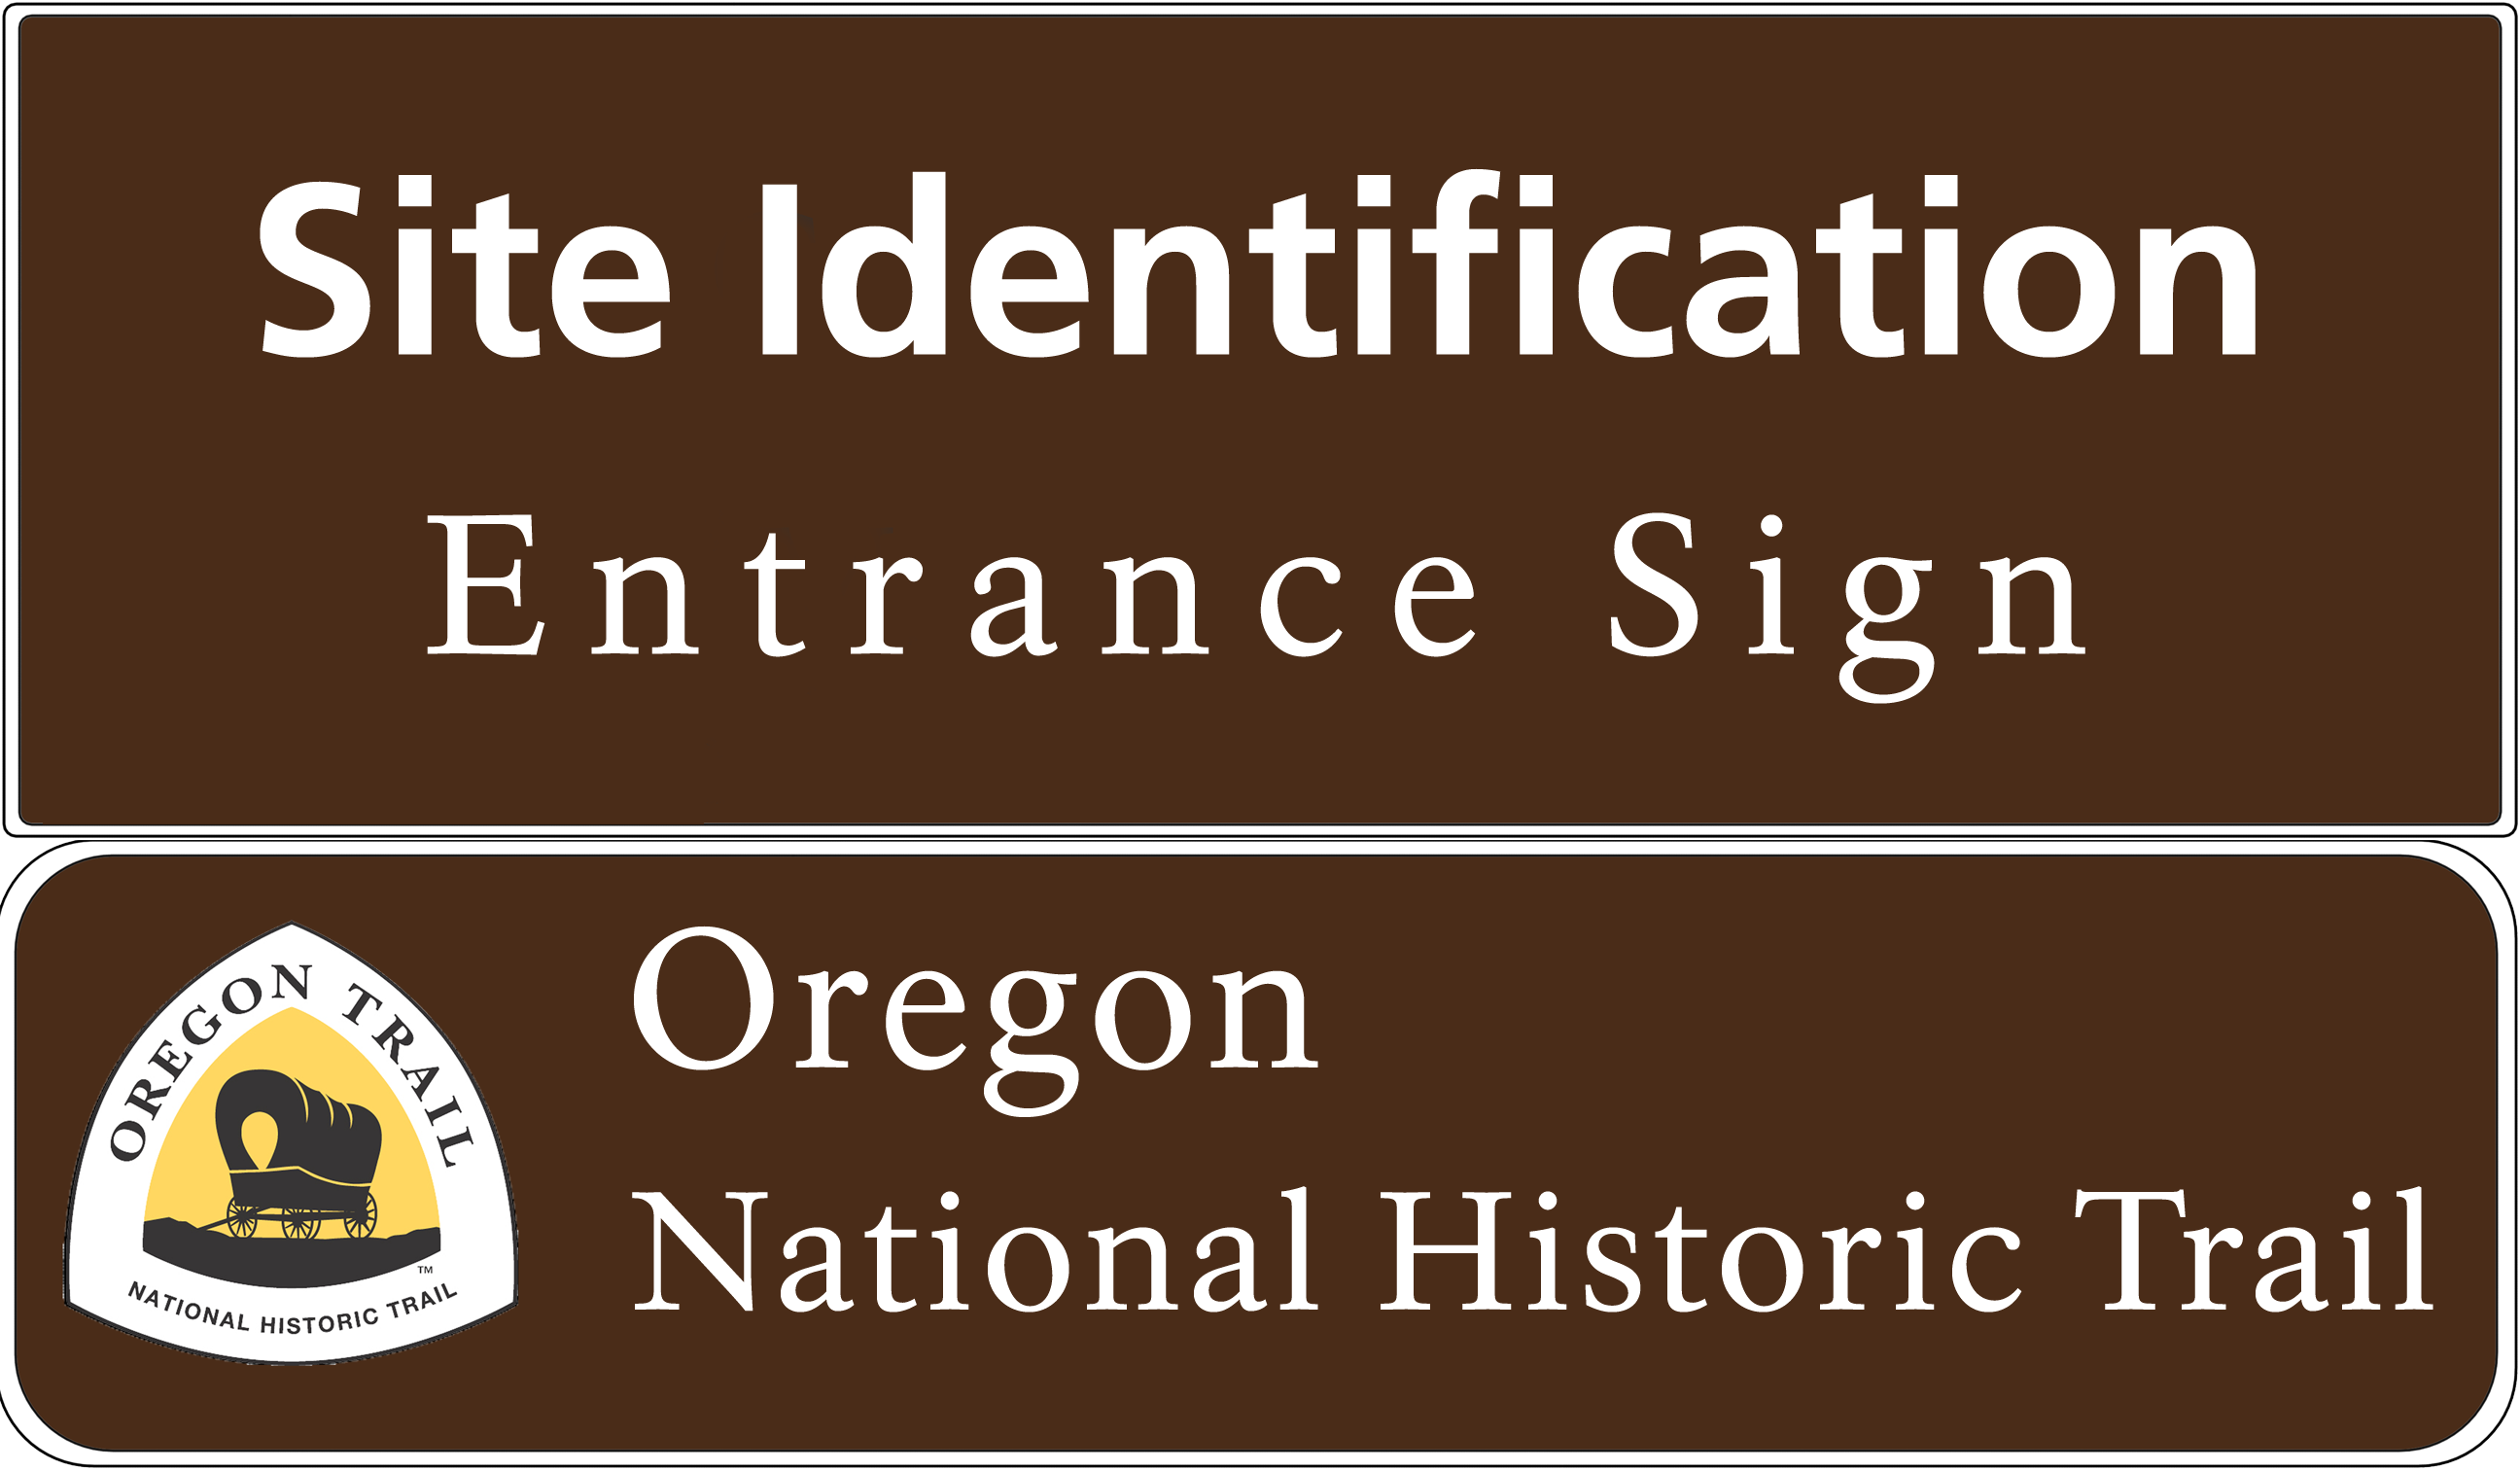 OREG_Site Identification Entrance